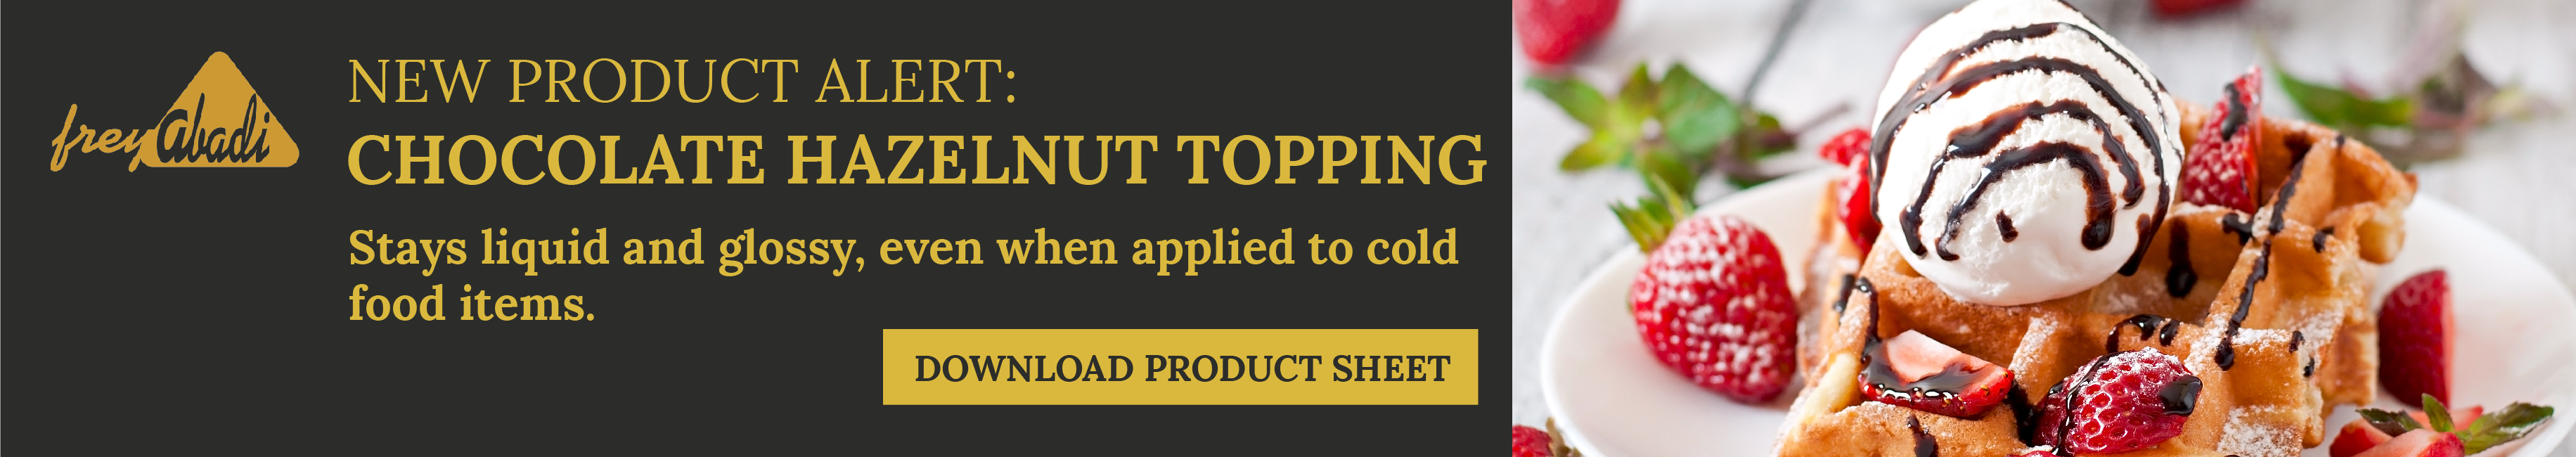 Download Chocolate Hazelnut Topping Product Sheet